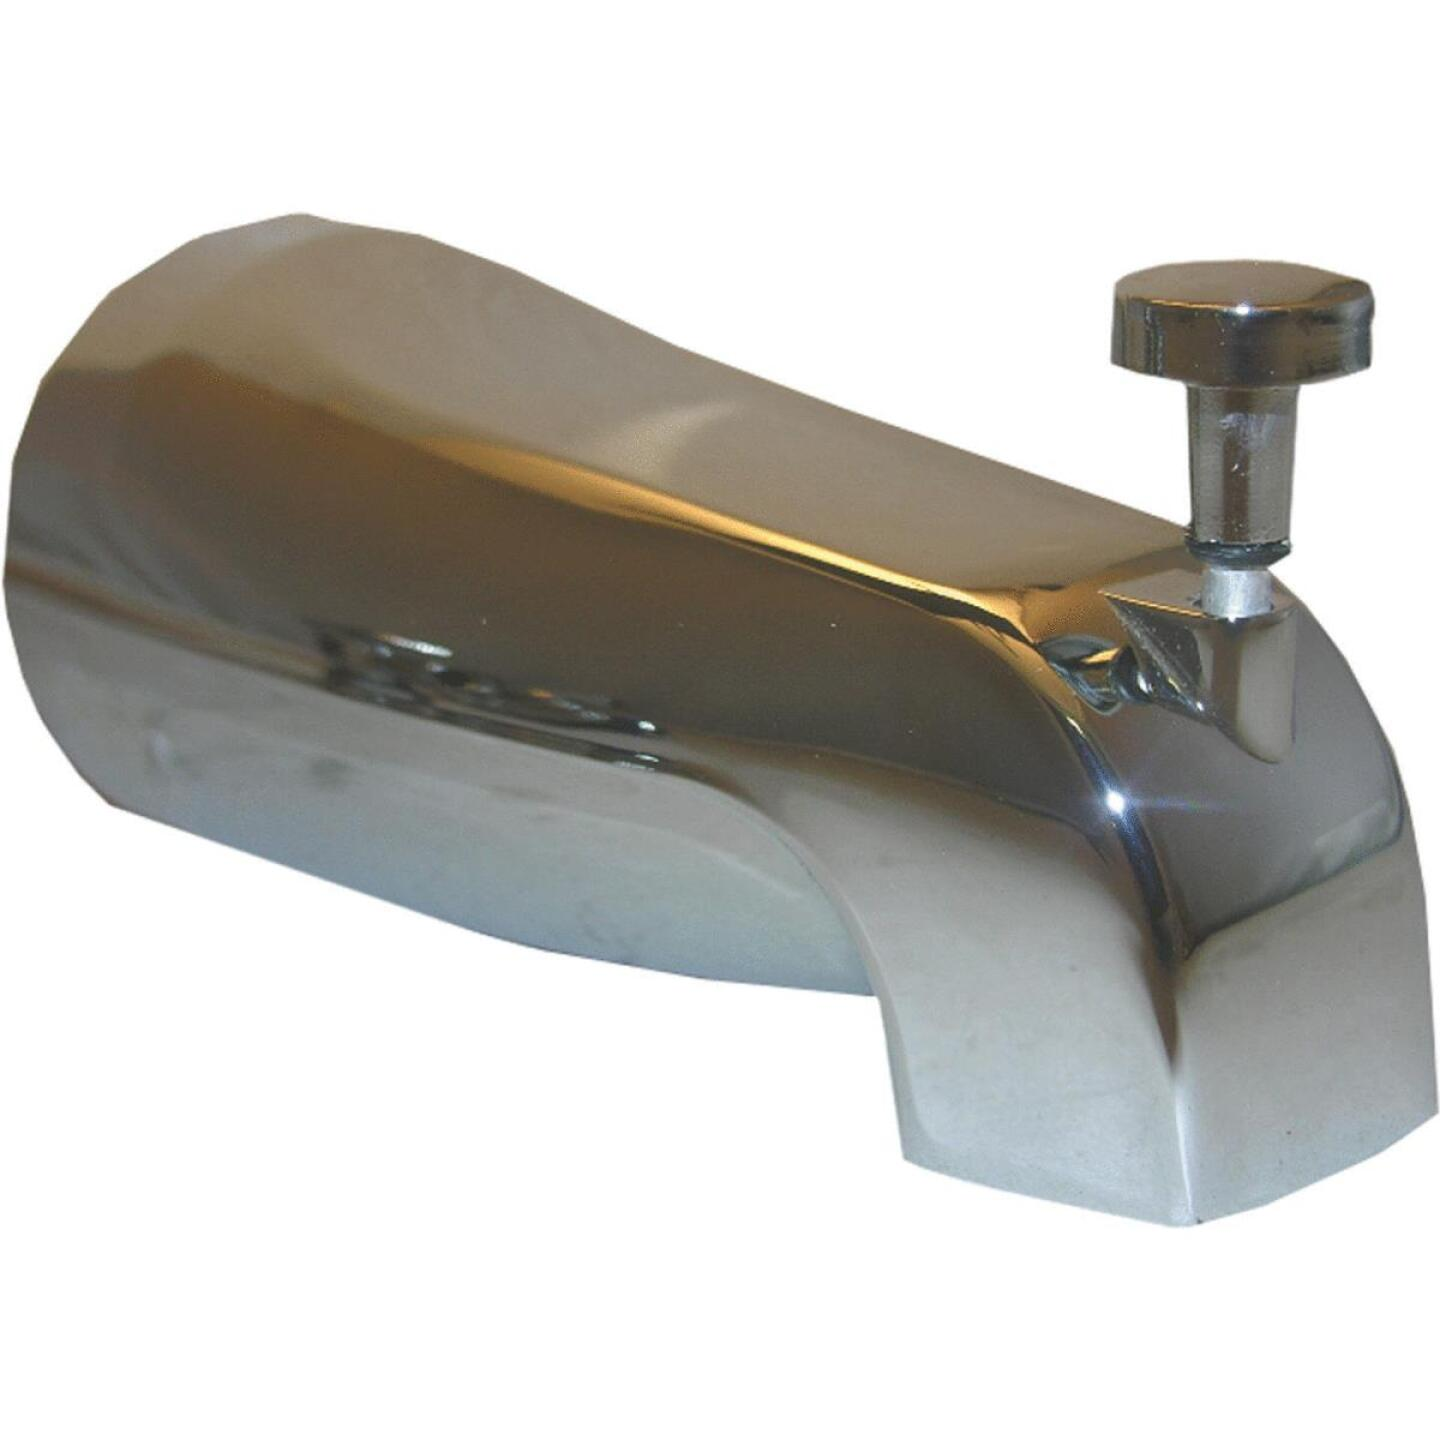 Lasco 5/8 In. Slip-Fit Chrome Bathtub Spout with Diverter Image 1